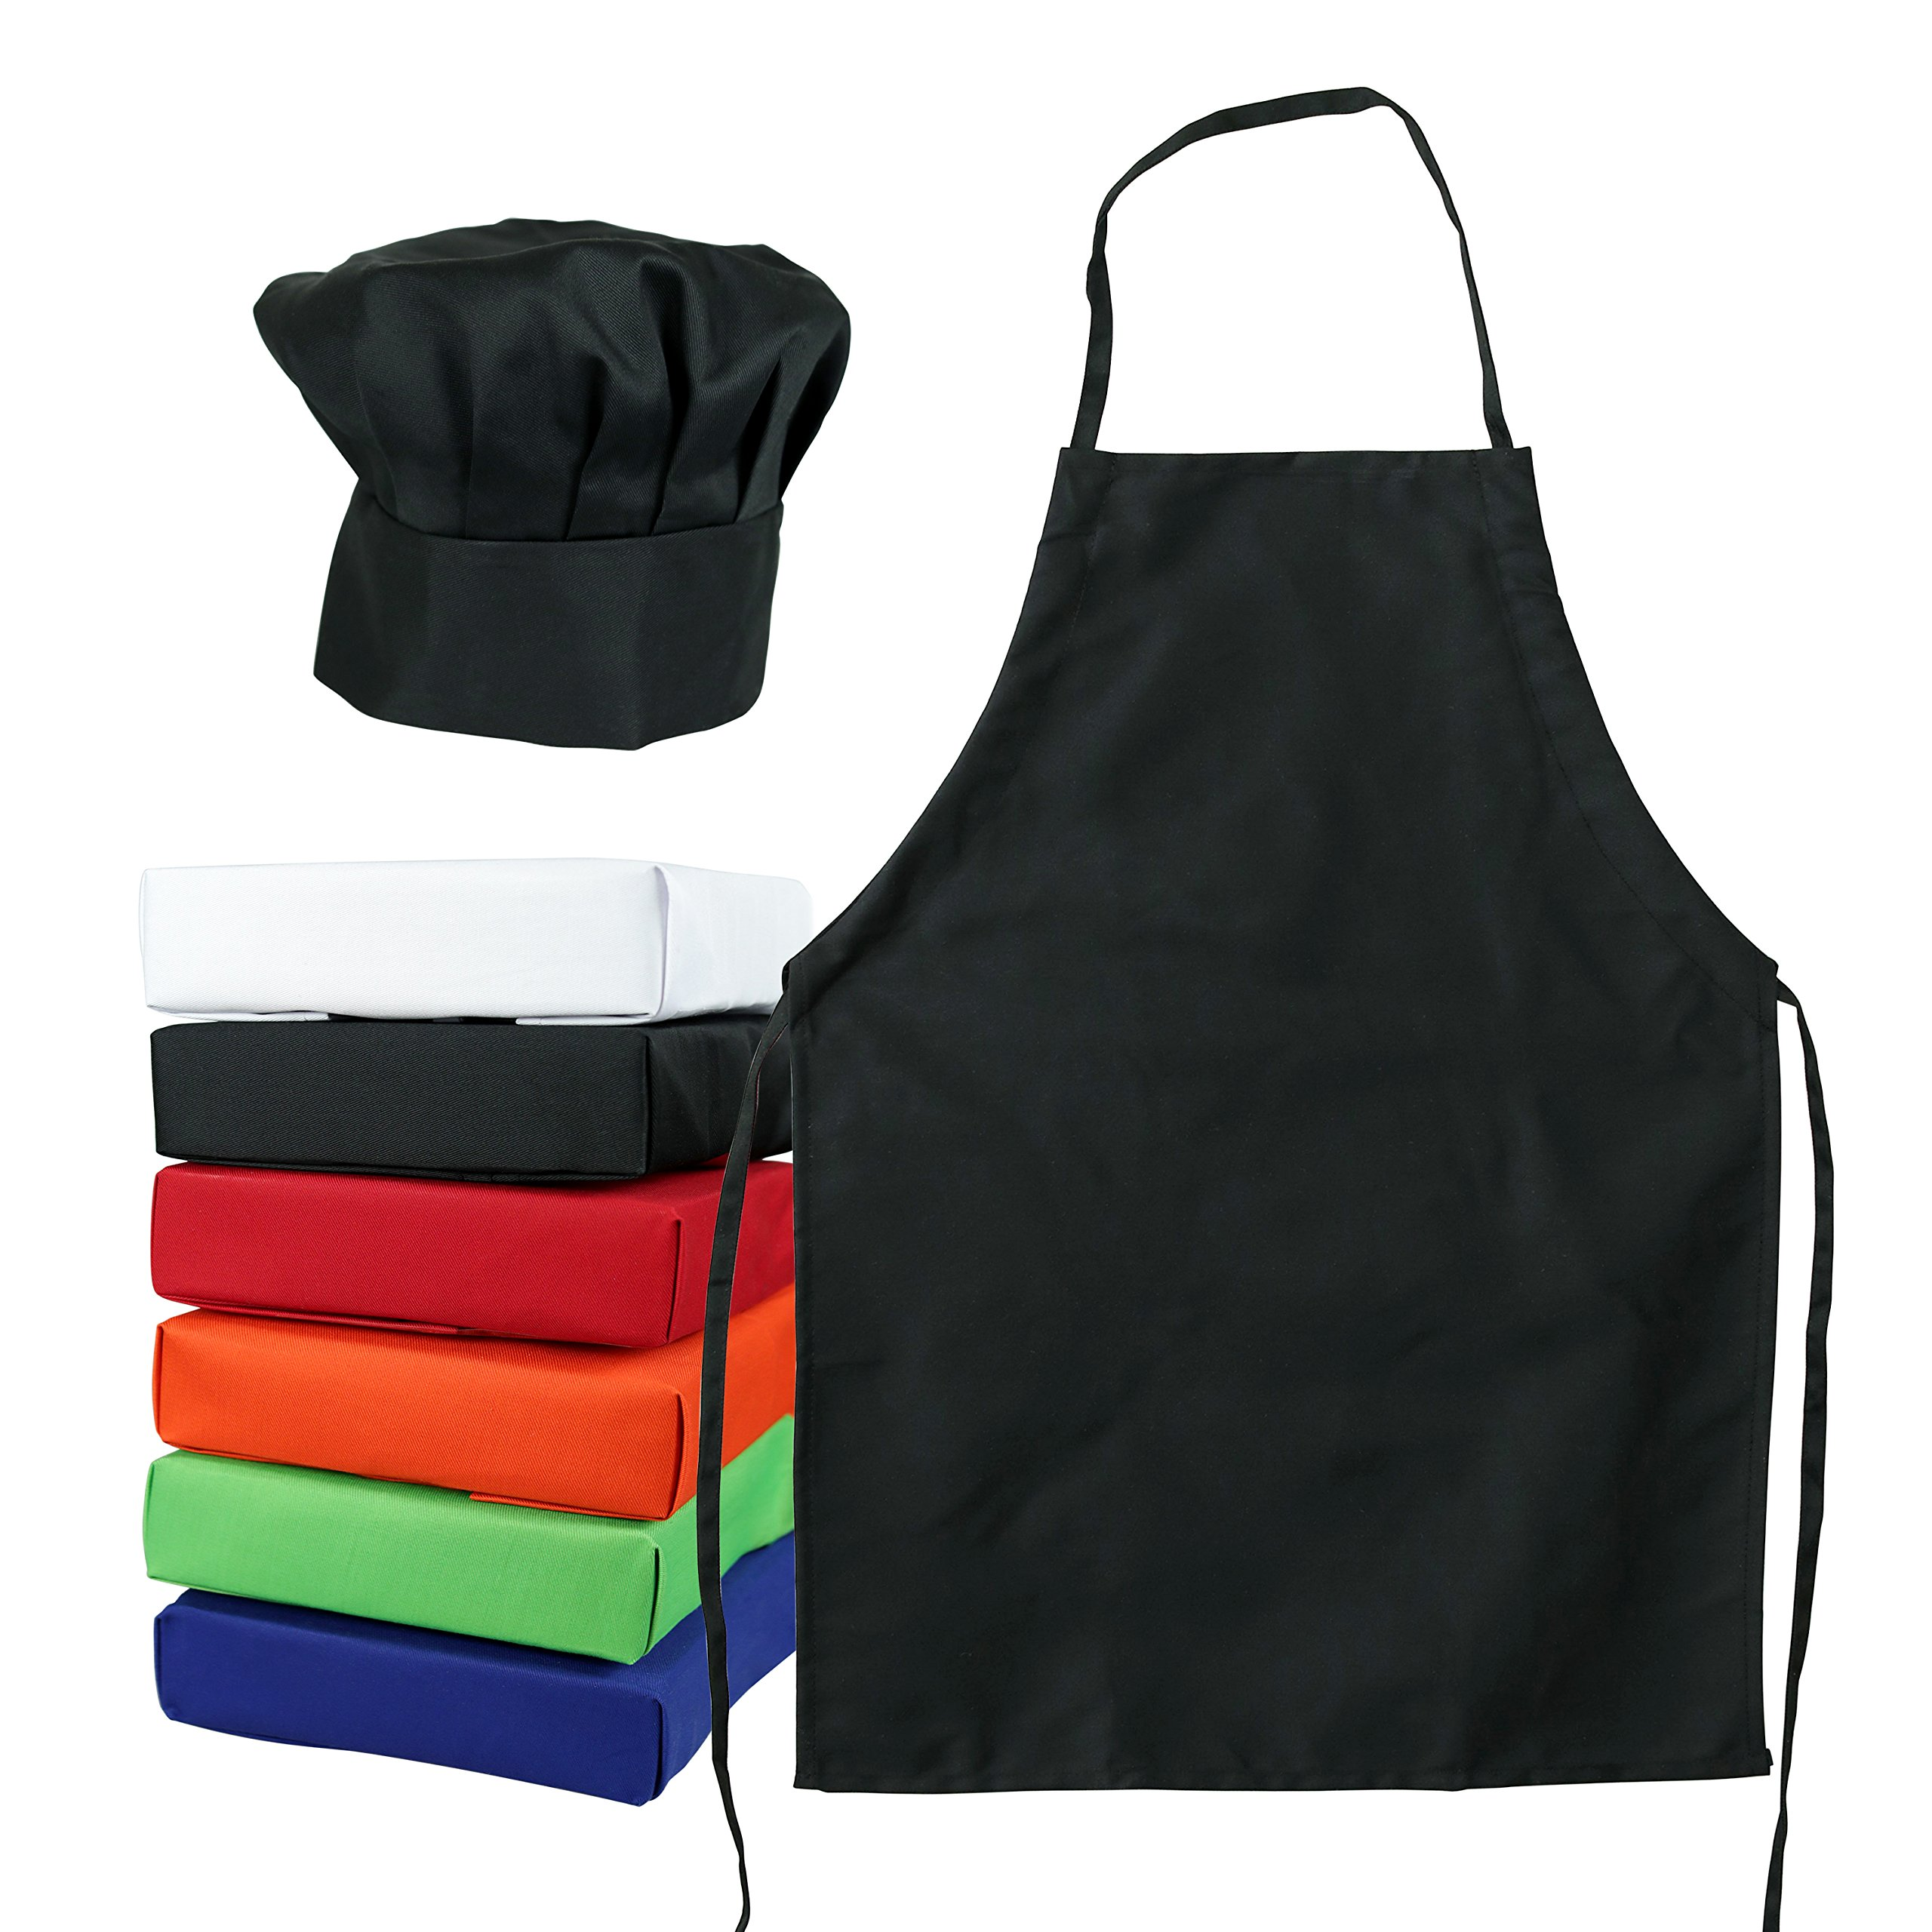 Tessa's Kitchen Kids -Child's Chef Hat Apron Set, Kids Size, Children's Kitchen Cooking and Baking Wear Kit for those Chefs in Training, Size (S 2-5 Year, Black)